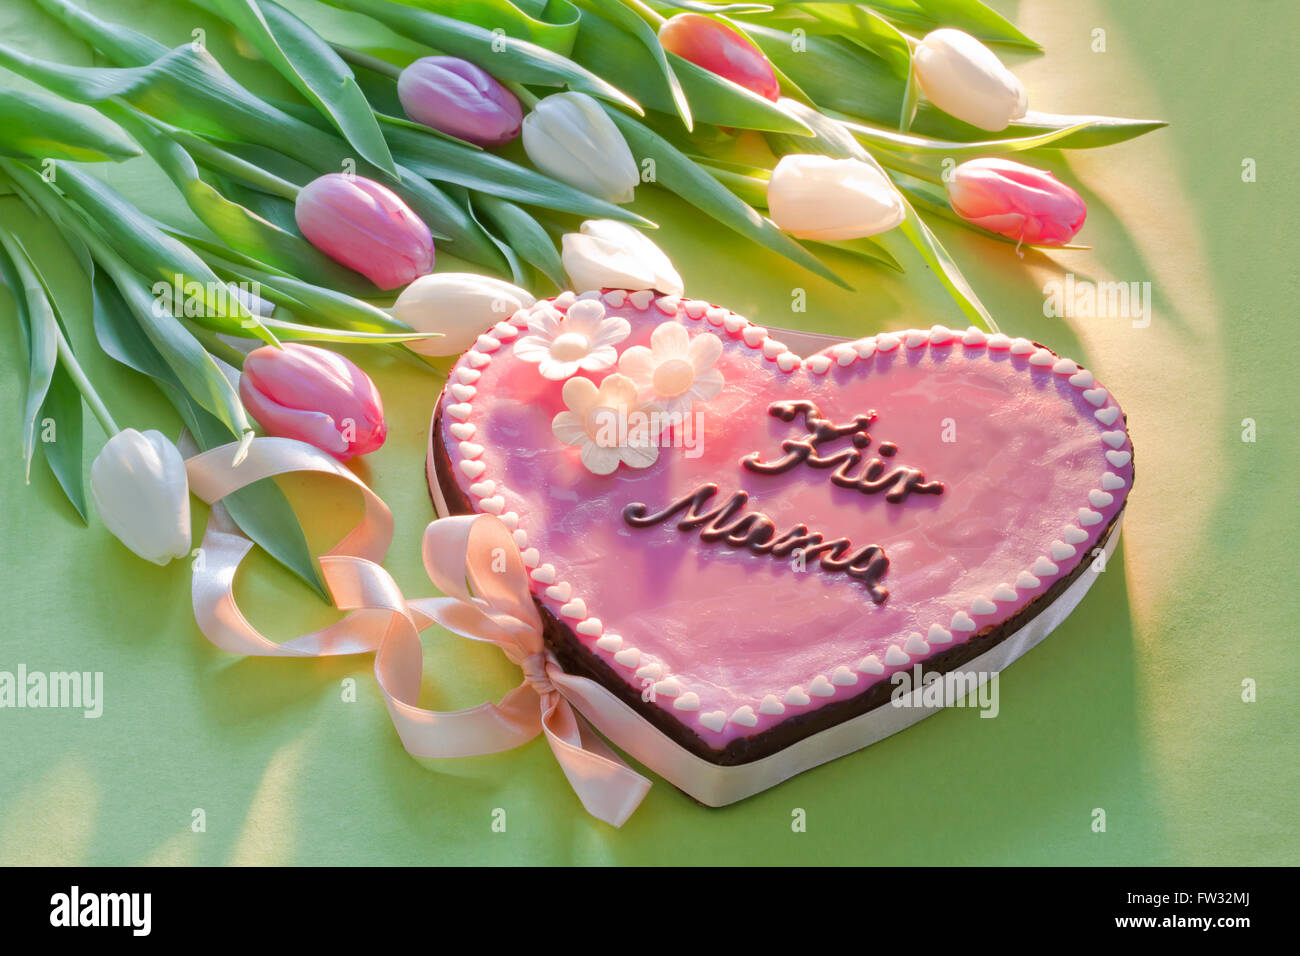 Pink cake with lettering that says Für Mama, For Mum on Mother's Day with flowers - Stock Image